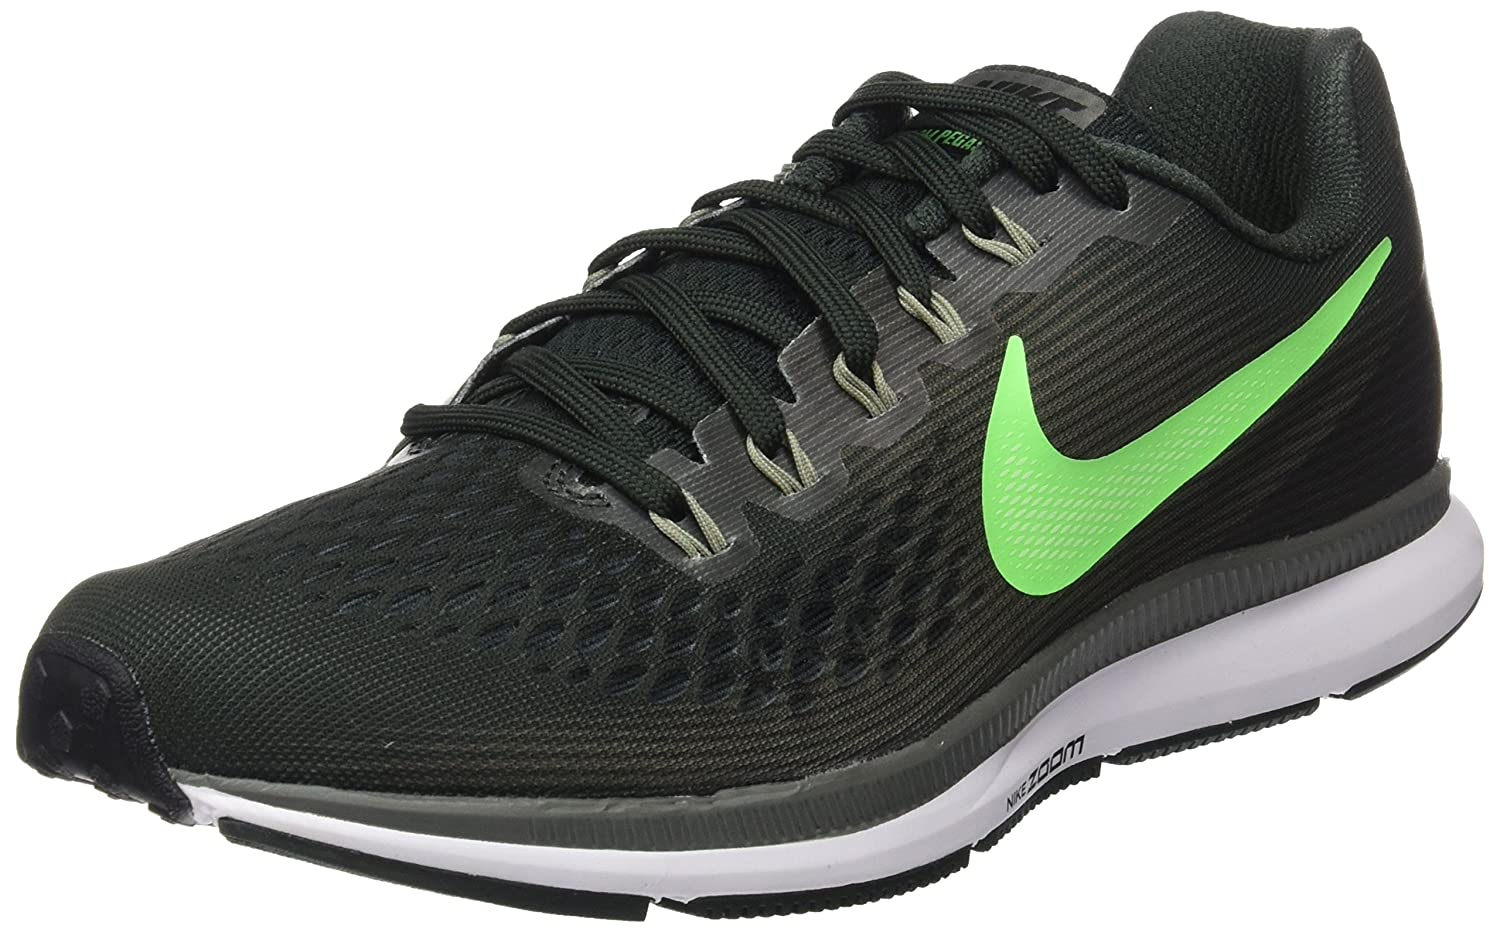 NIKE Men's Air Zoom Pegasus 34, Outdoor Green/Rage Green B06X6GFDY8 12 D(M) US|Outdoor Green/Rage Green